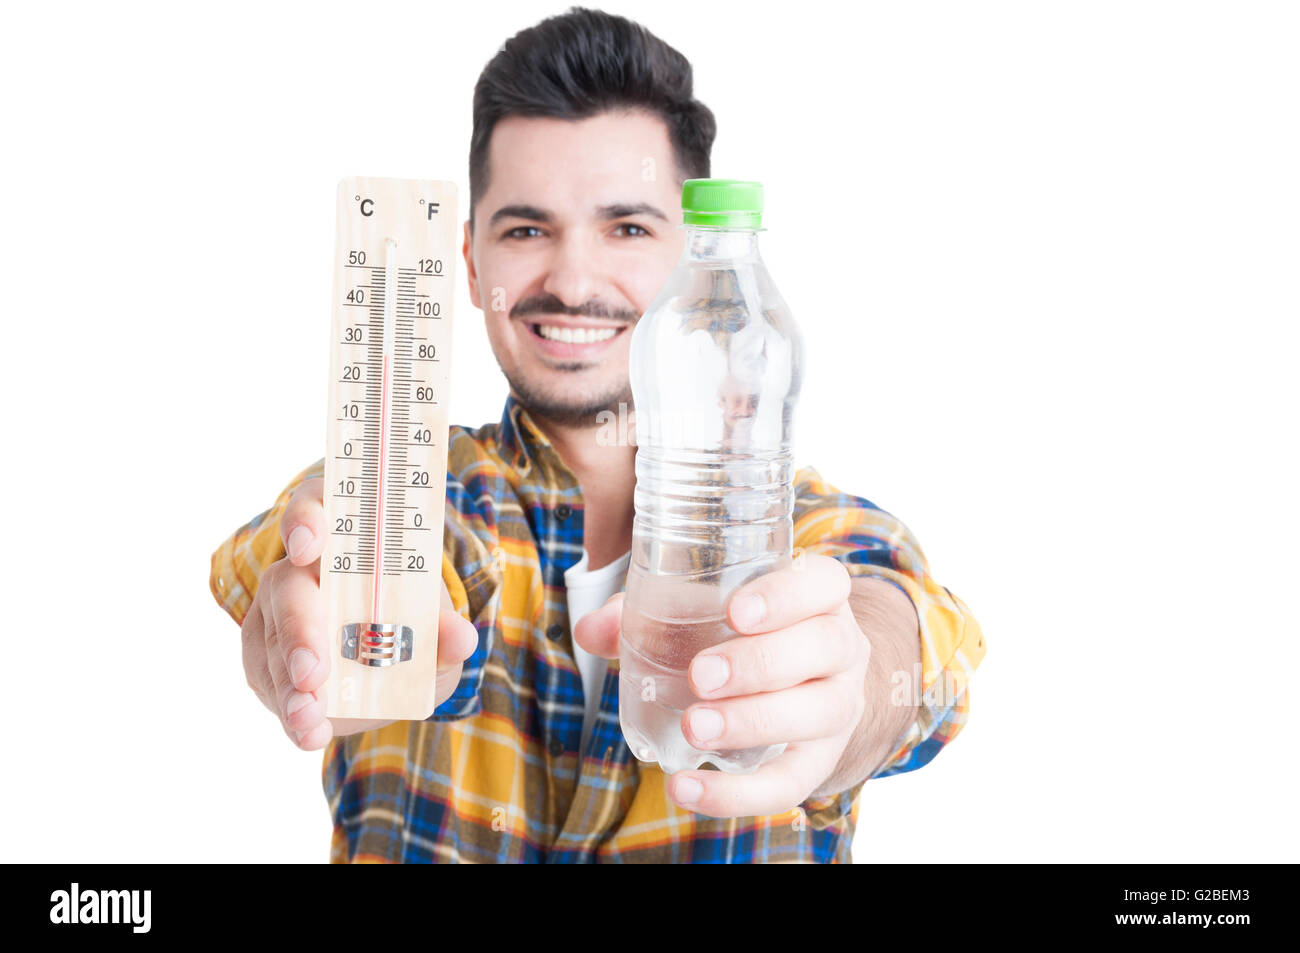 Smiling male holding a bottle of water and a thermometer in his hand as refreshing and vitality concept isolated - Stock Image